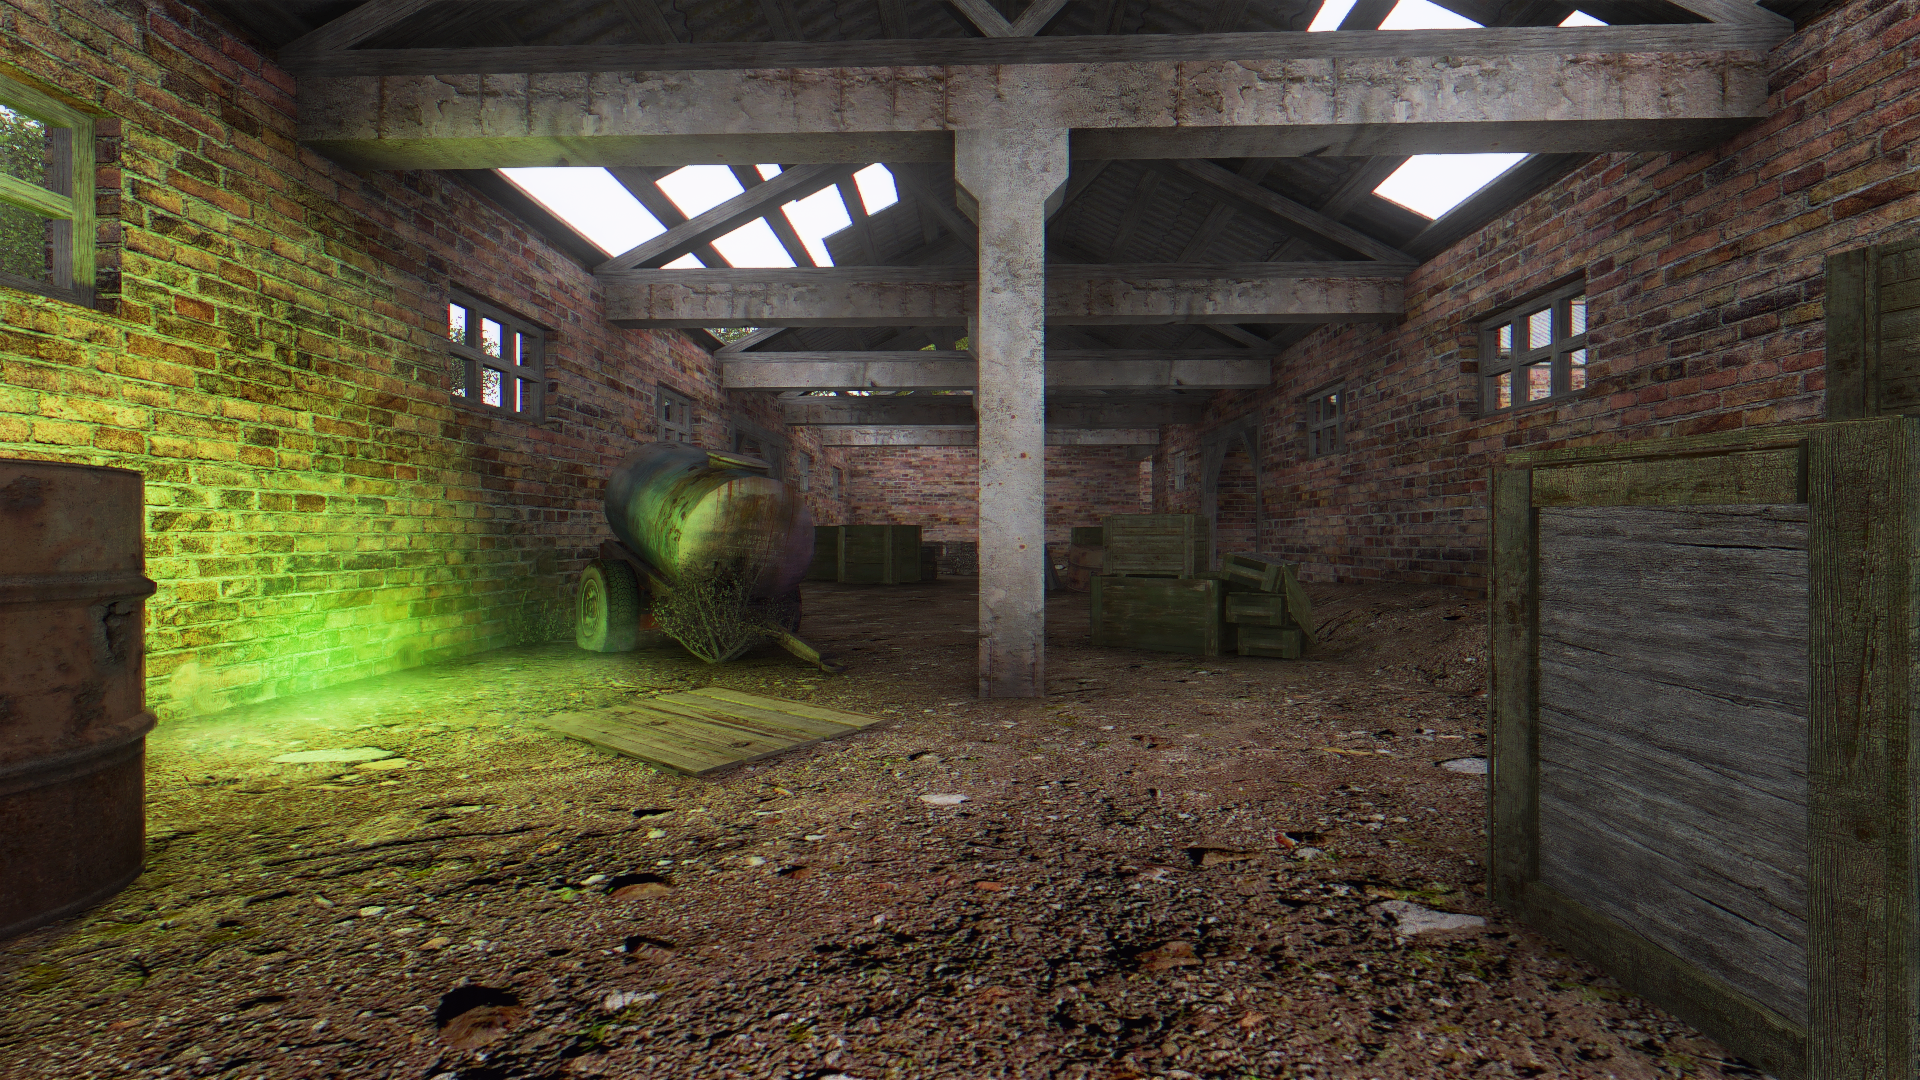 AnomalyDX11AVX 2021-01-12 22-09-44.png - S.T.A.L.K.E.R.: Call of Pripyat